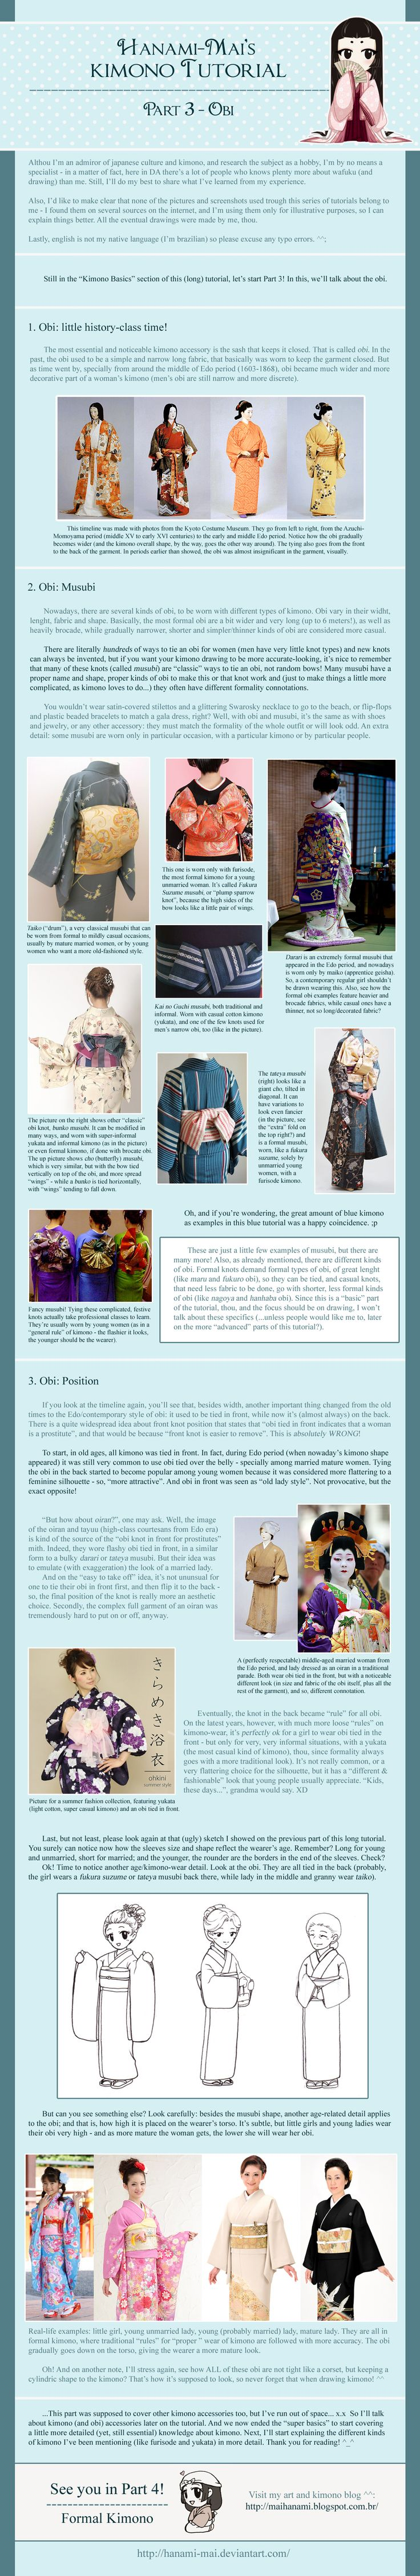 Kimono Tutorial - Part 03 by Hanami-Mai.deviantart.com on @DeviantArt